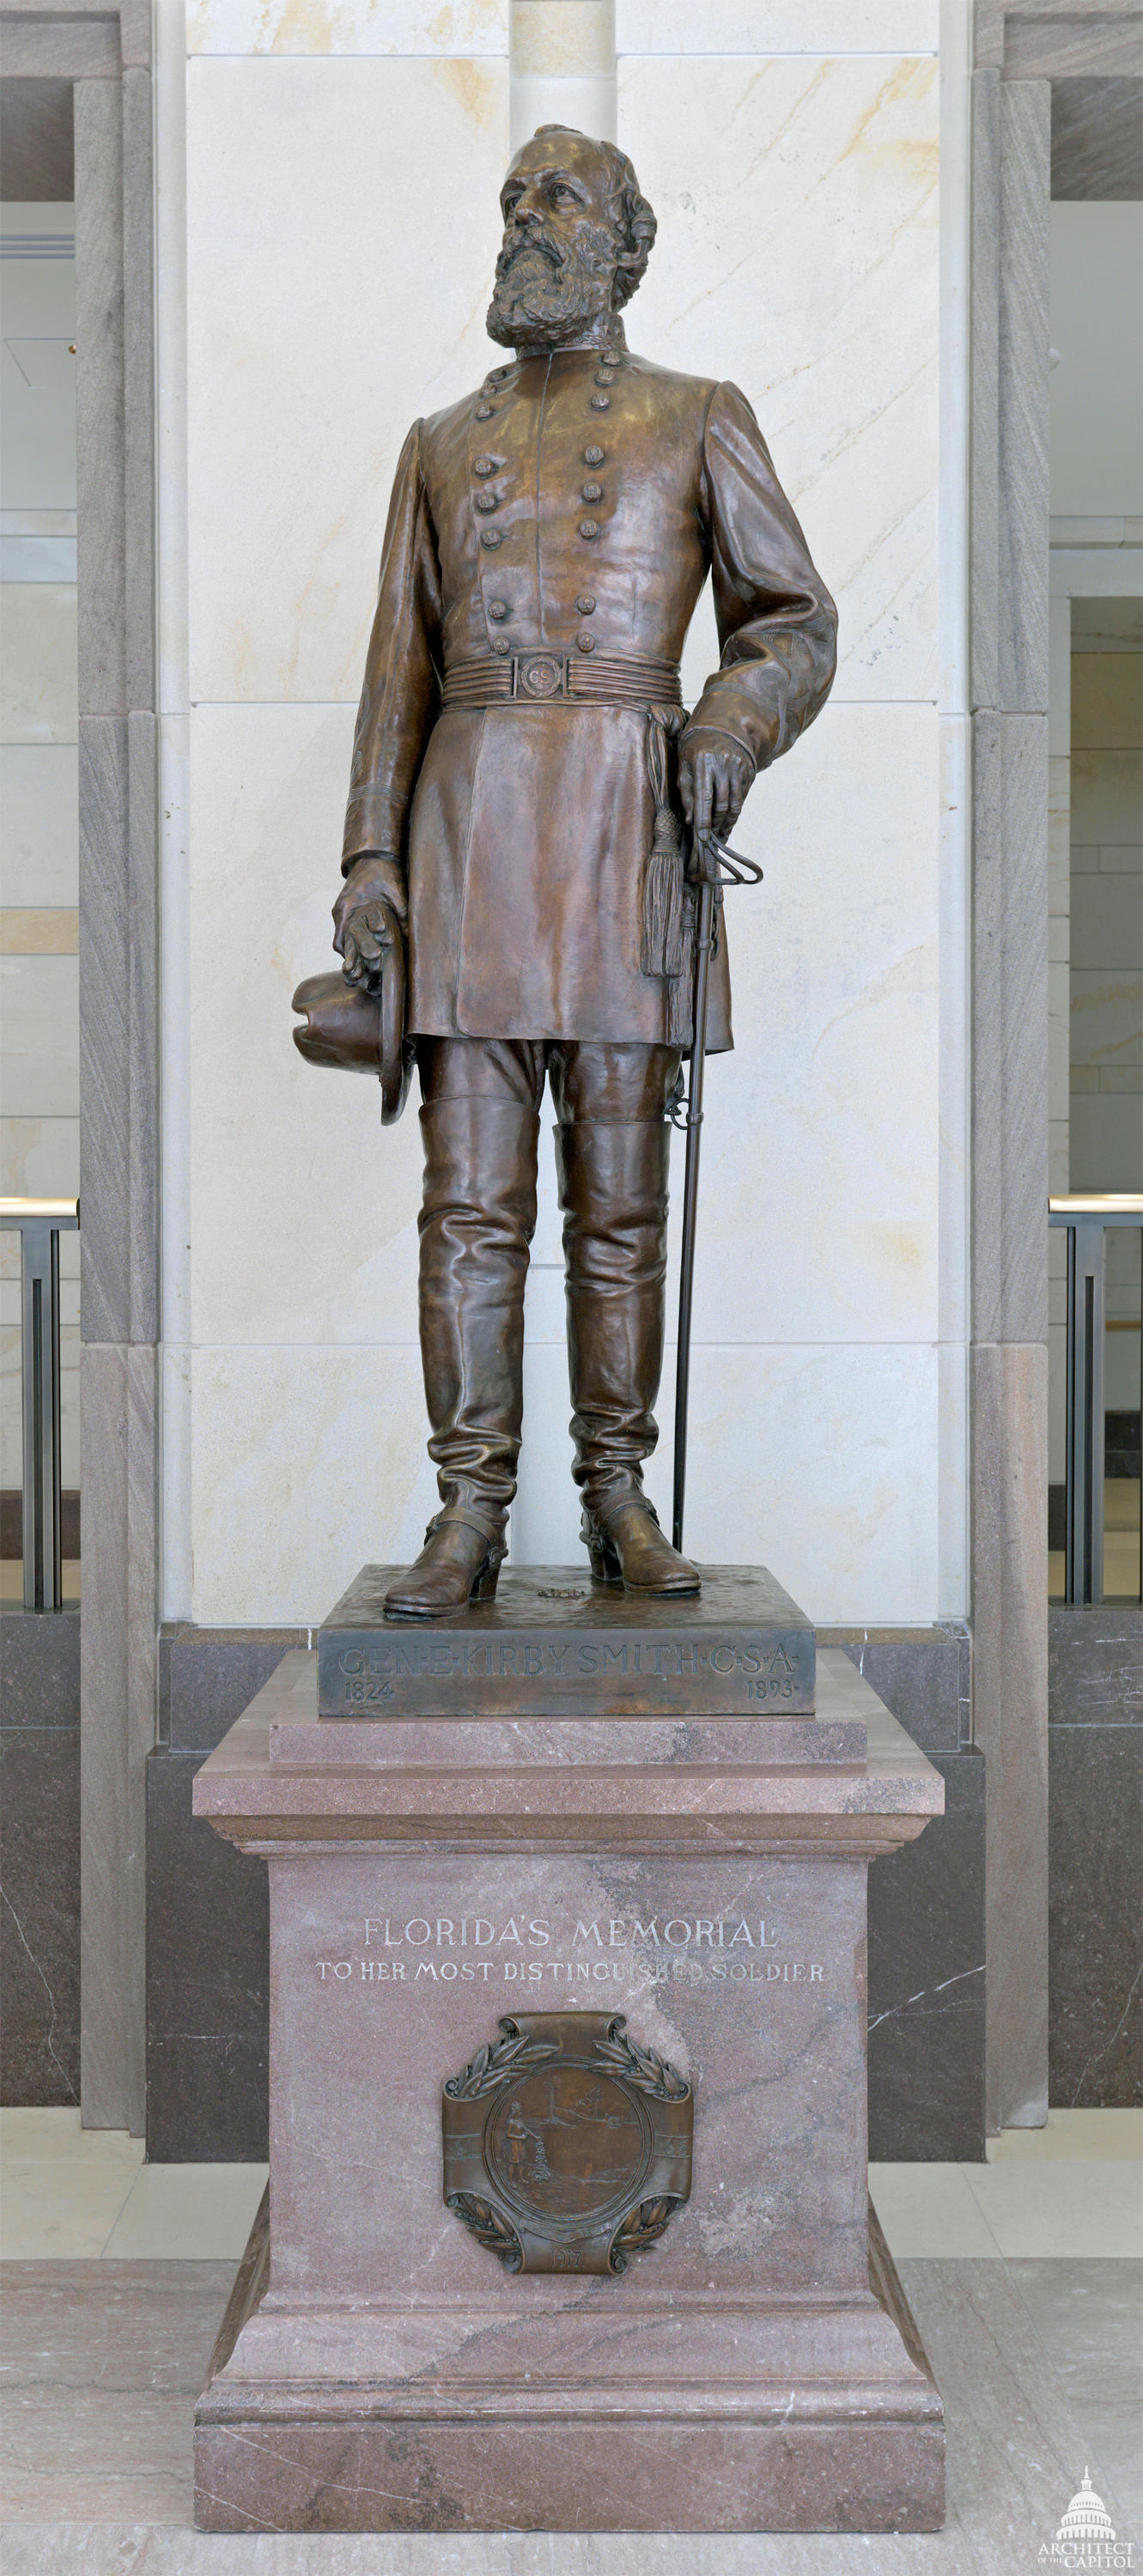 State Lawmaker Replace Statue Of Confederate General In D